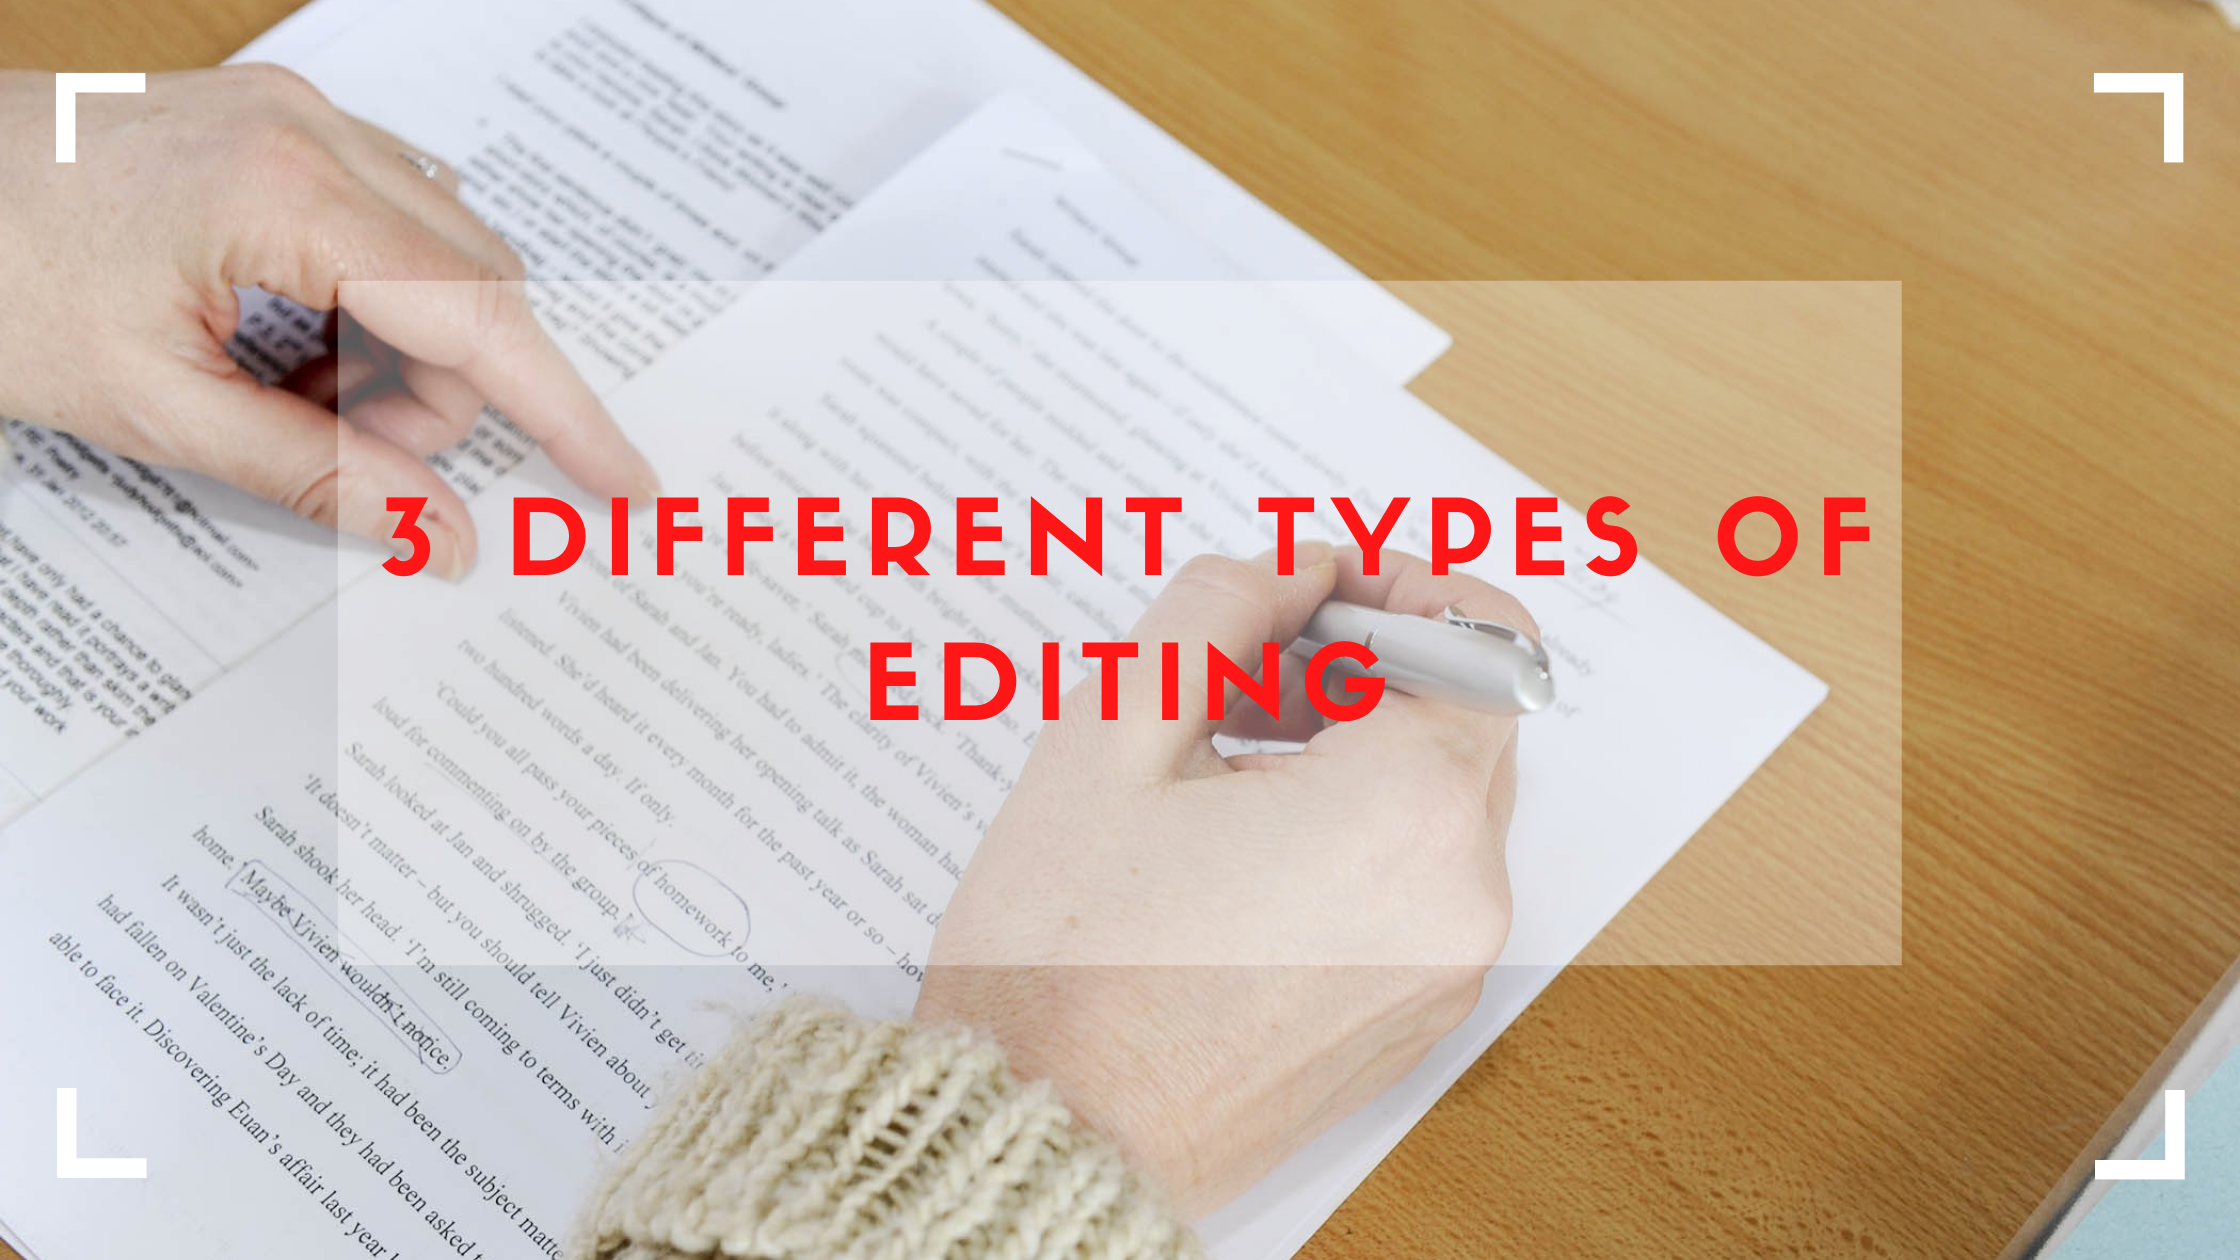 3 different types of editing